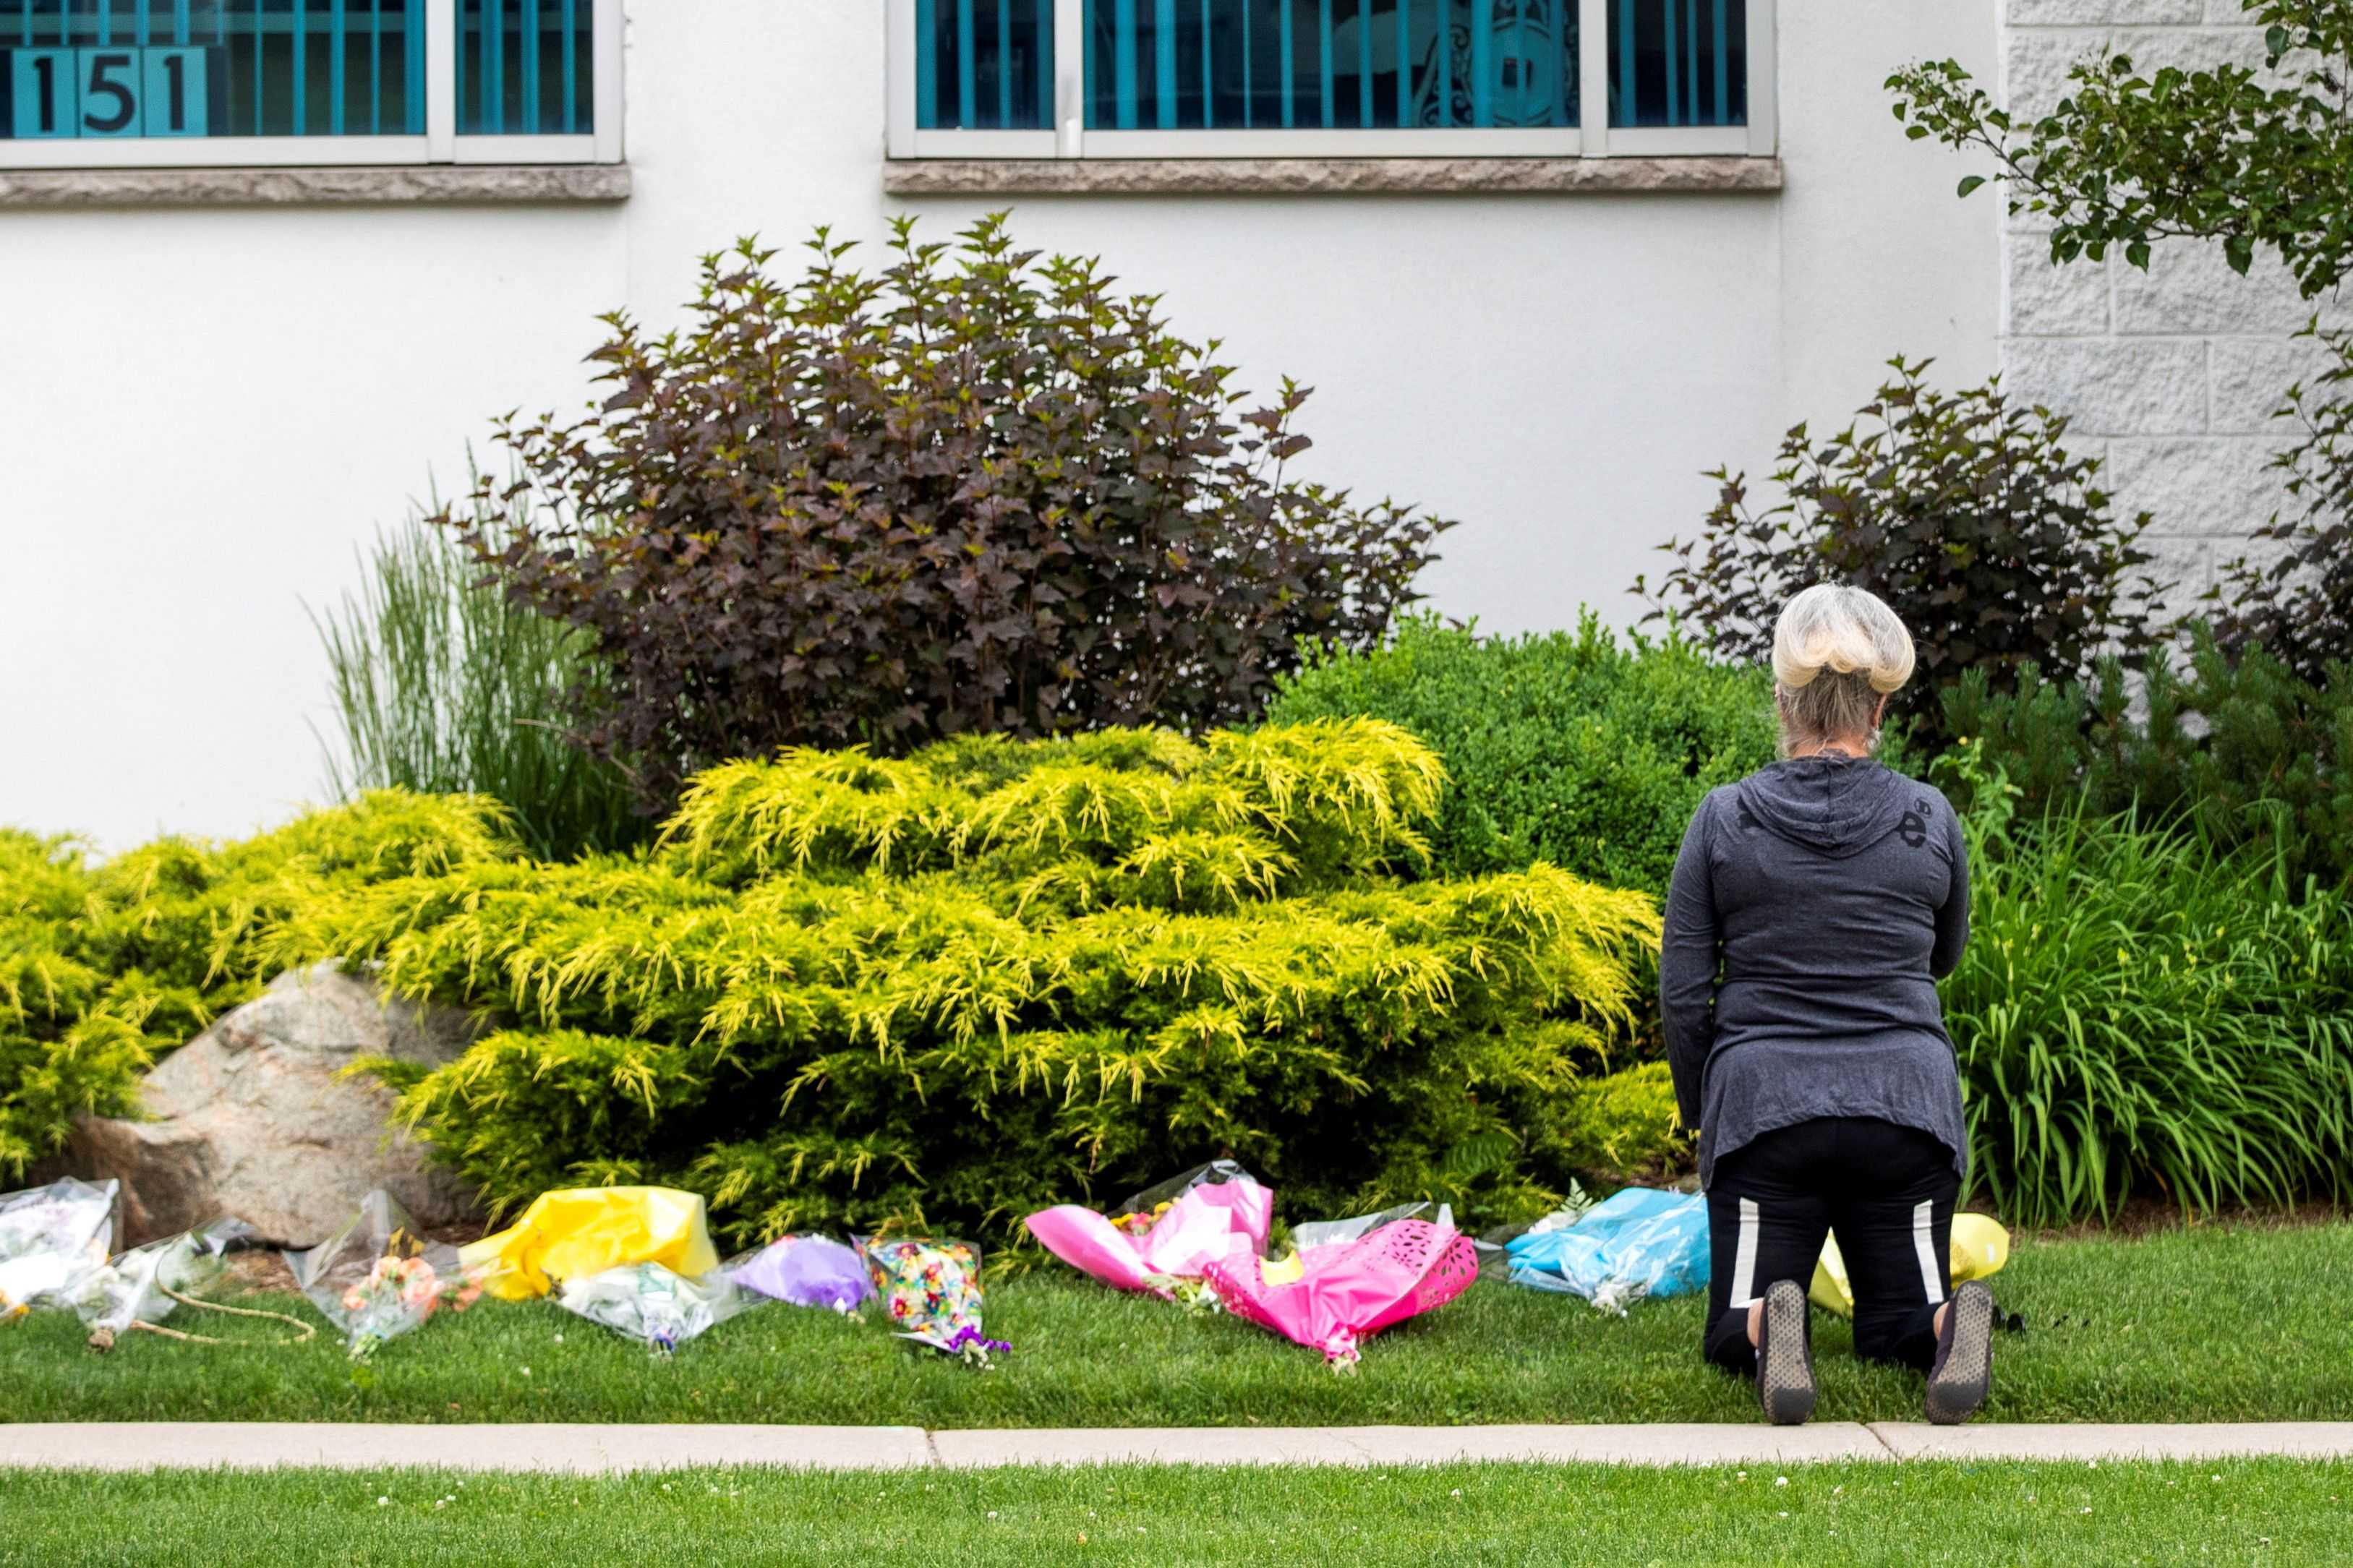 A woman prays at the London Muslim Mosque, which is located about 500 metres from where police arrested the suspect of a hate-motivated attack that killed four members of a Muslim family, in London, Ontario, Canada June 8, 2021. REUTERS/Carlos Osorio